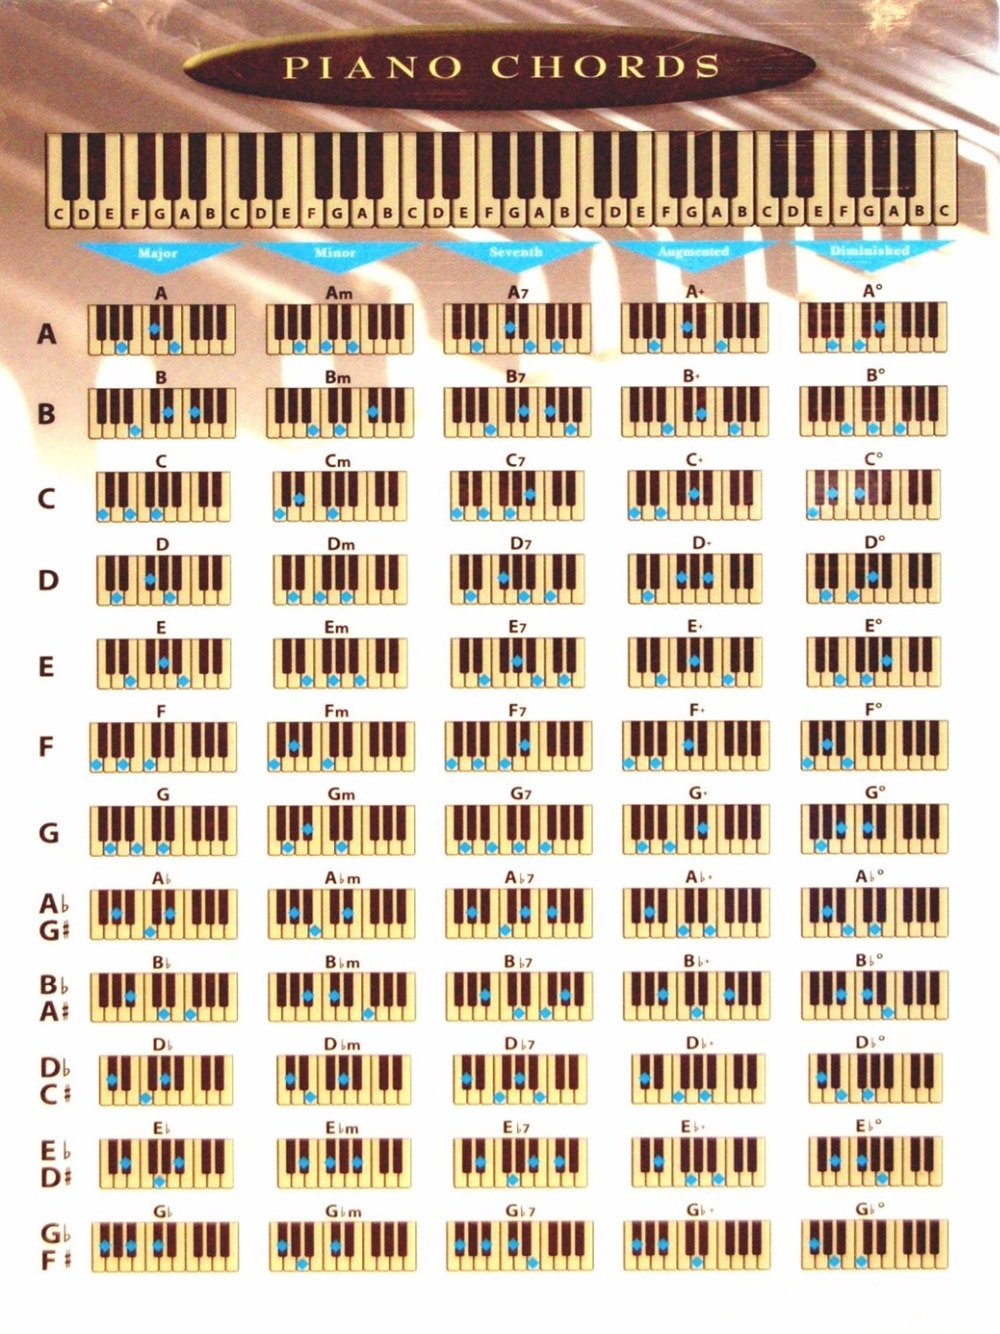 Piano Chords Chart Us 442 40 Offpiano Chord Chart Poster Perfect For Students And Teachers 17x13 Decor 01 In Painting Calligraphy From Home Garden On